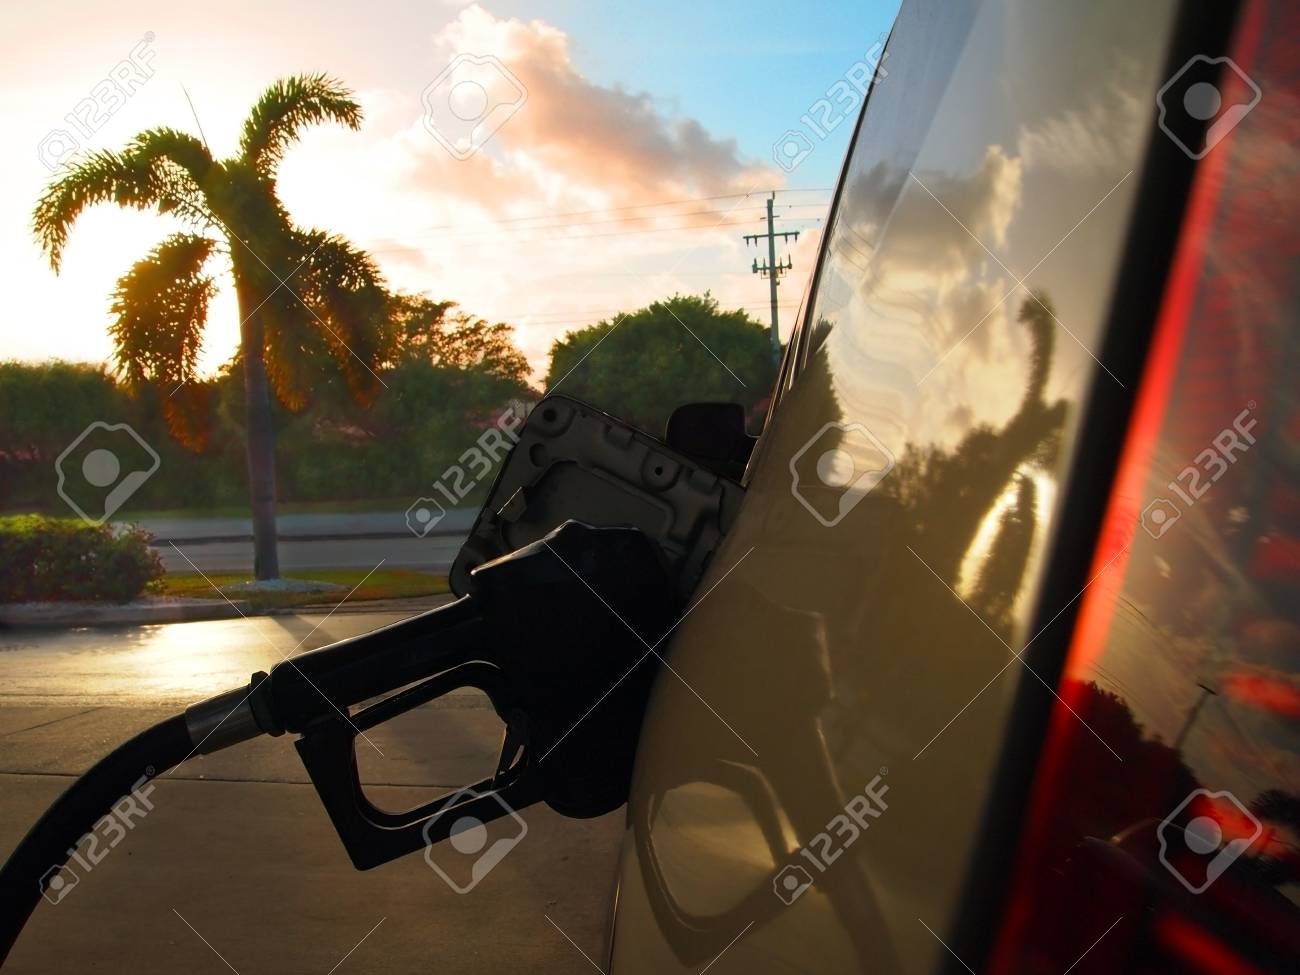 Close up on gas pump, filling the tank of an automobile at sunset with palm tree and colorful clouds in the background Stock Photo - 17195878